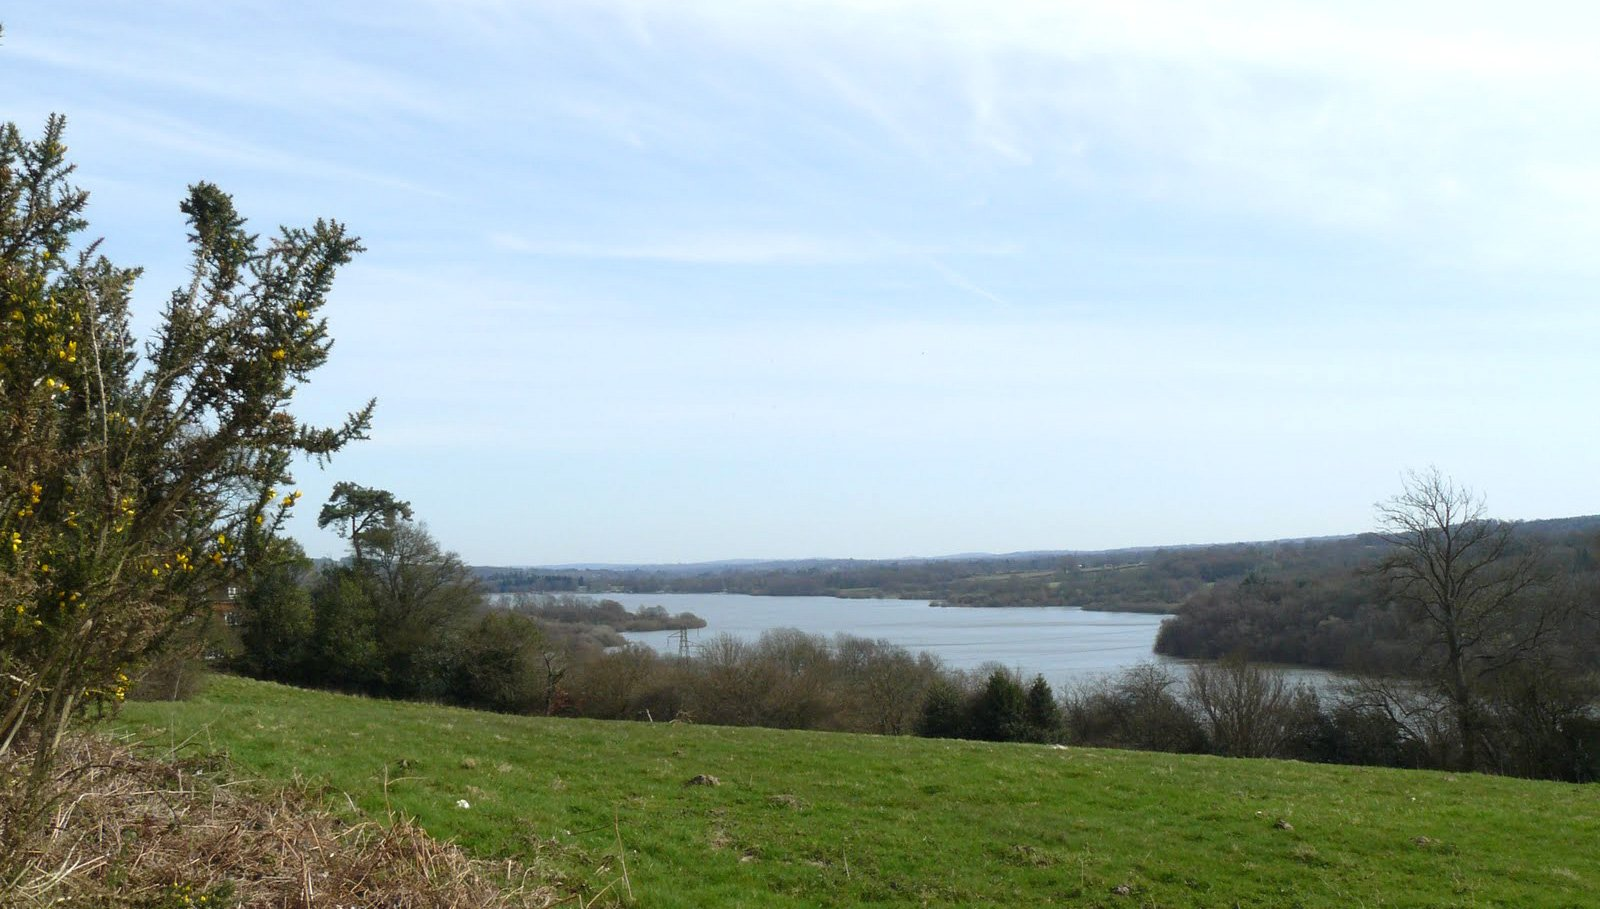 - Weir Wood Reservoir Nature Reserve